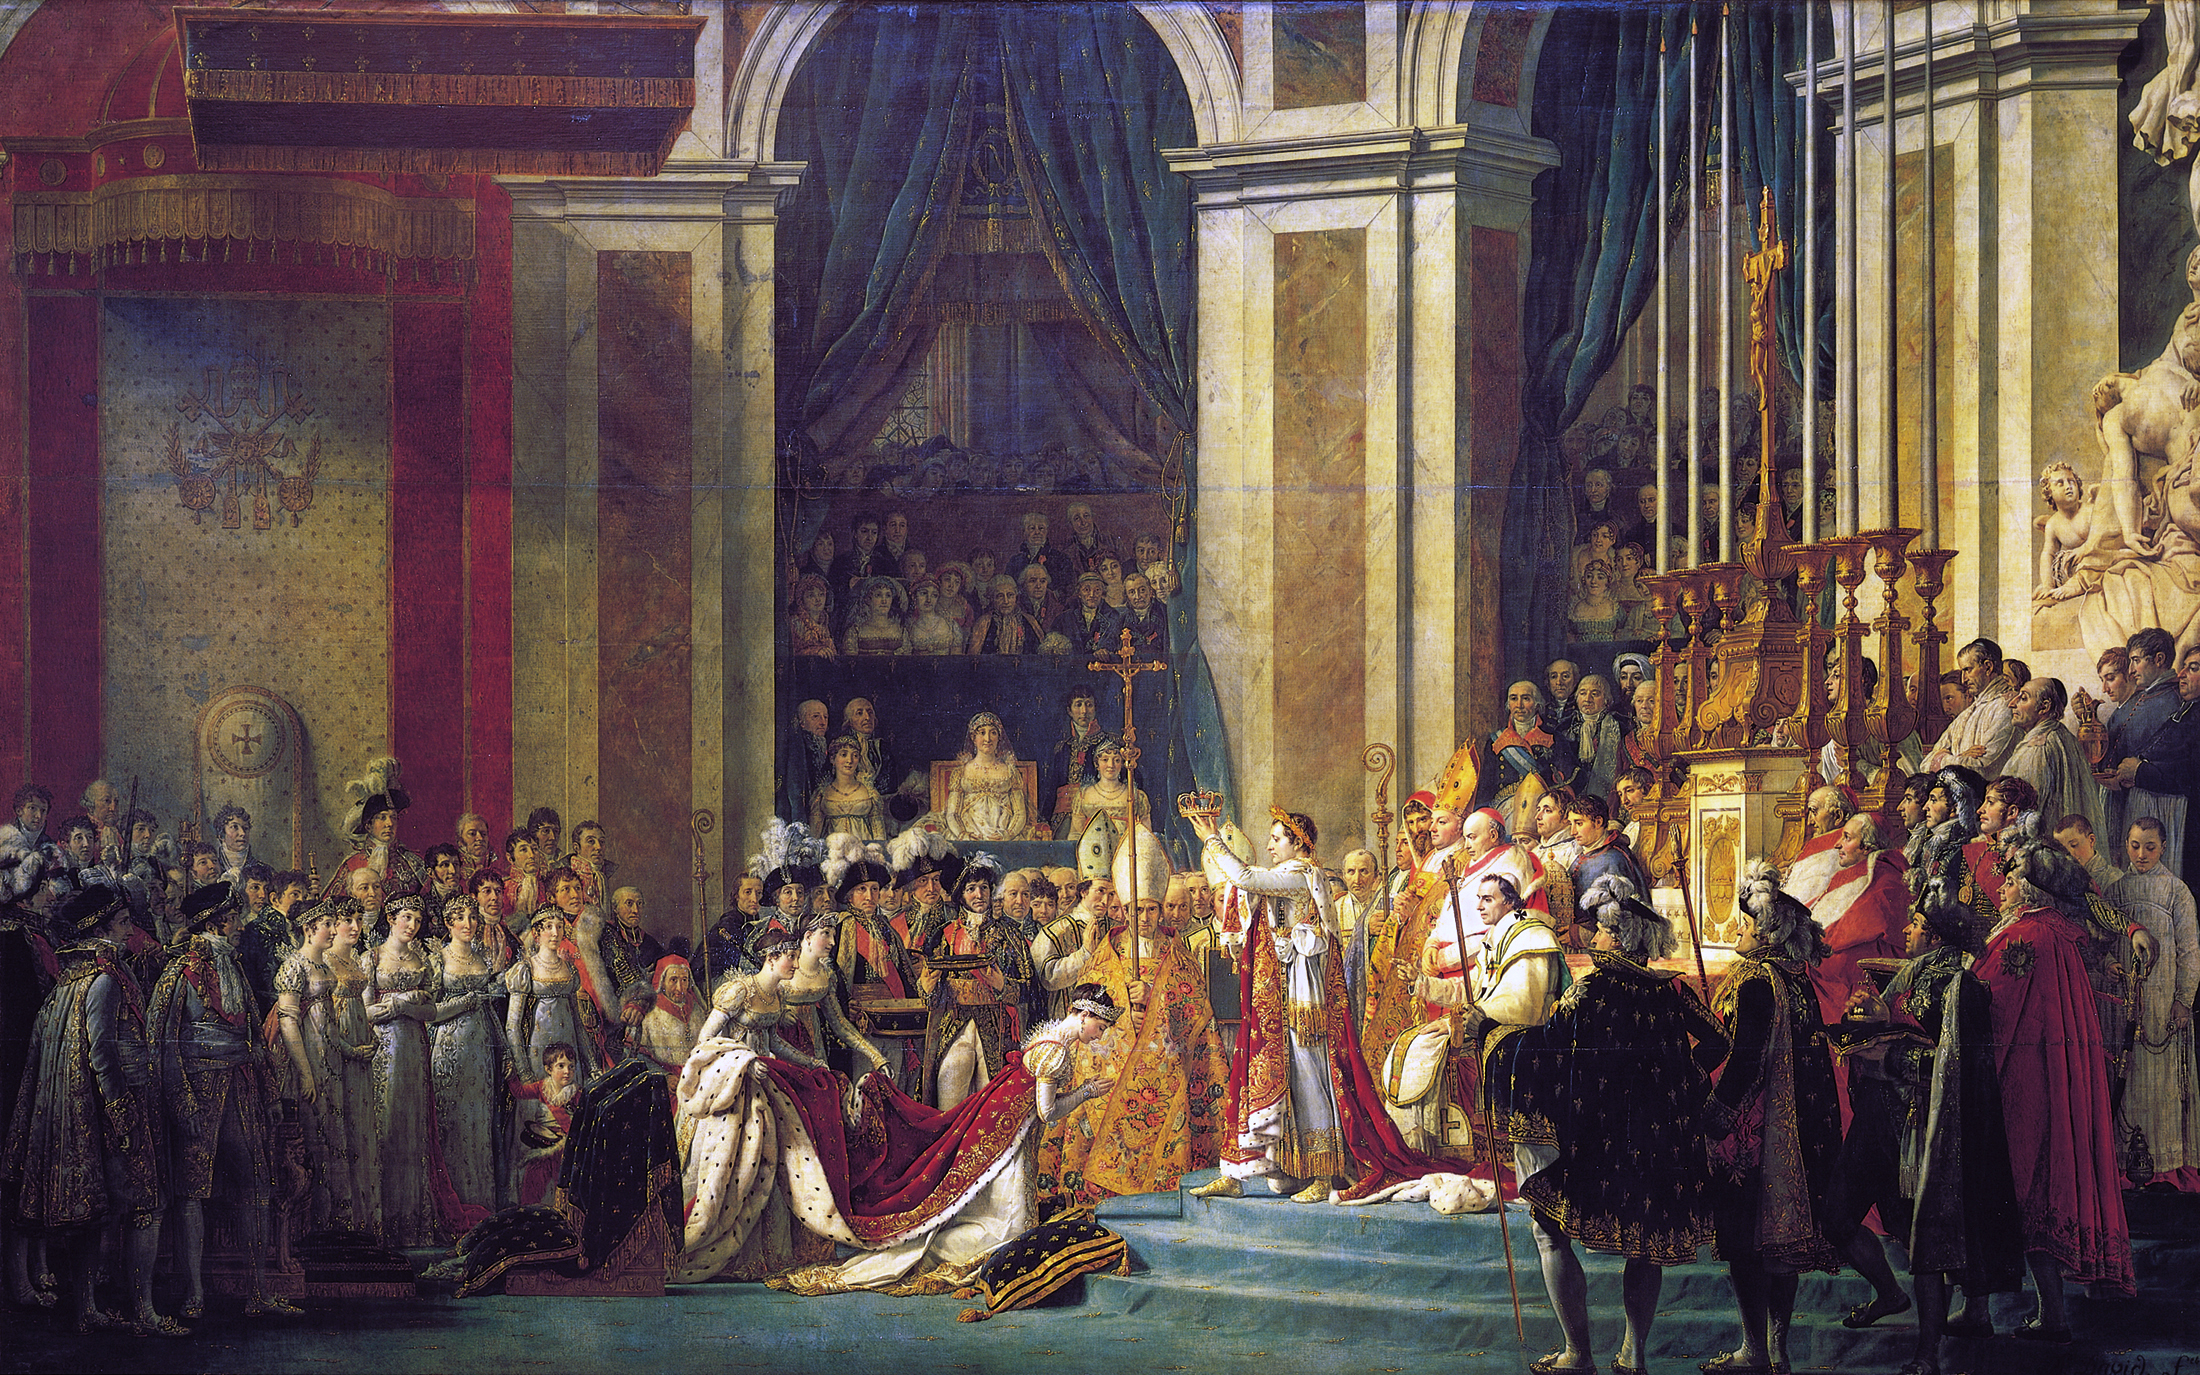 http://upload.wikimedia.org/wikipedia/commons/9/98/Jacques-Louis_David%2C_The_Coronation_of_Napoleon.jpg